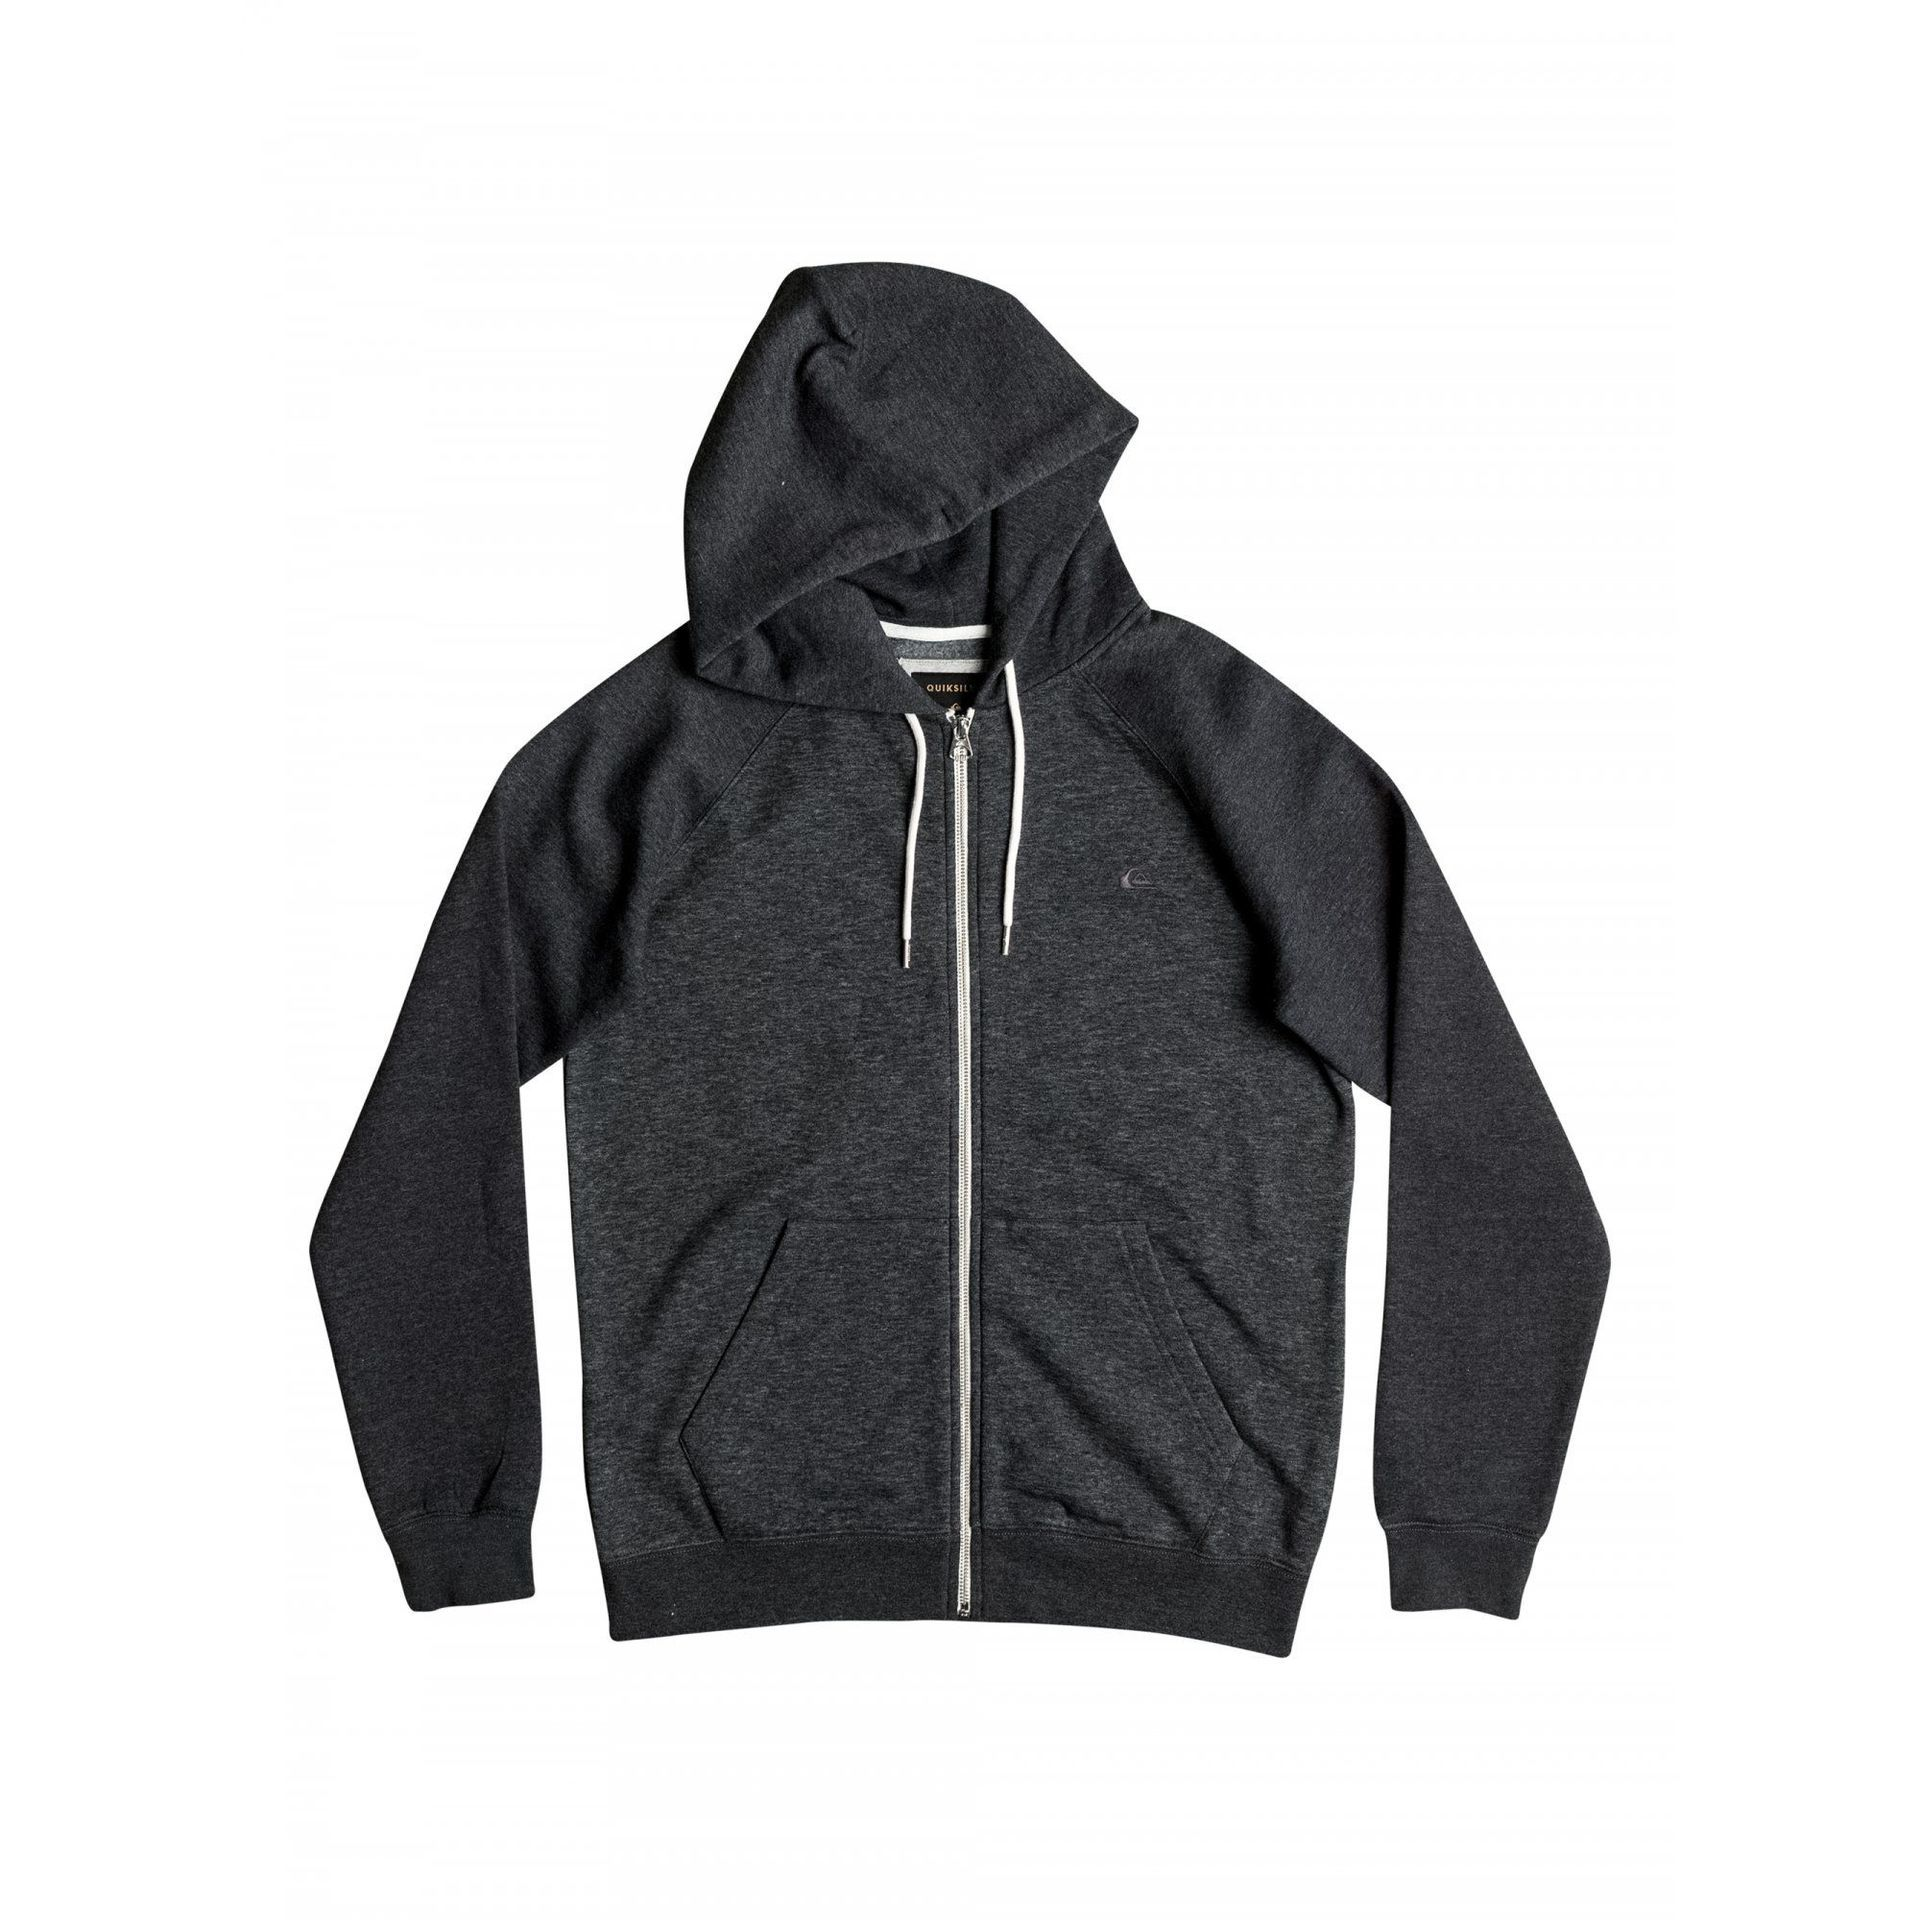 BLUZA QUIKSILVER EVERYDAY ZIP KTFH 1